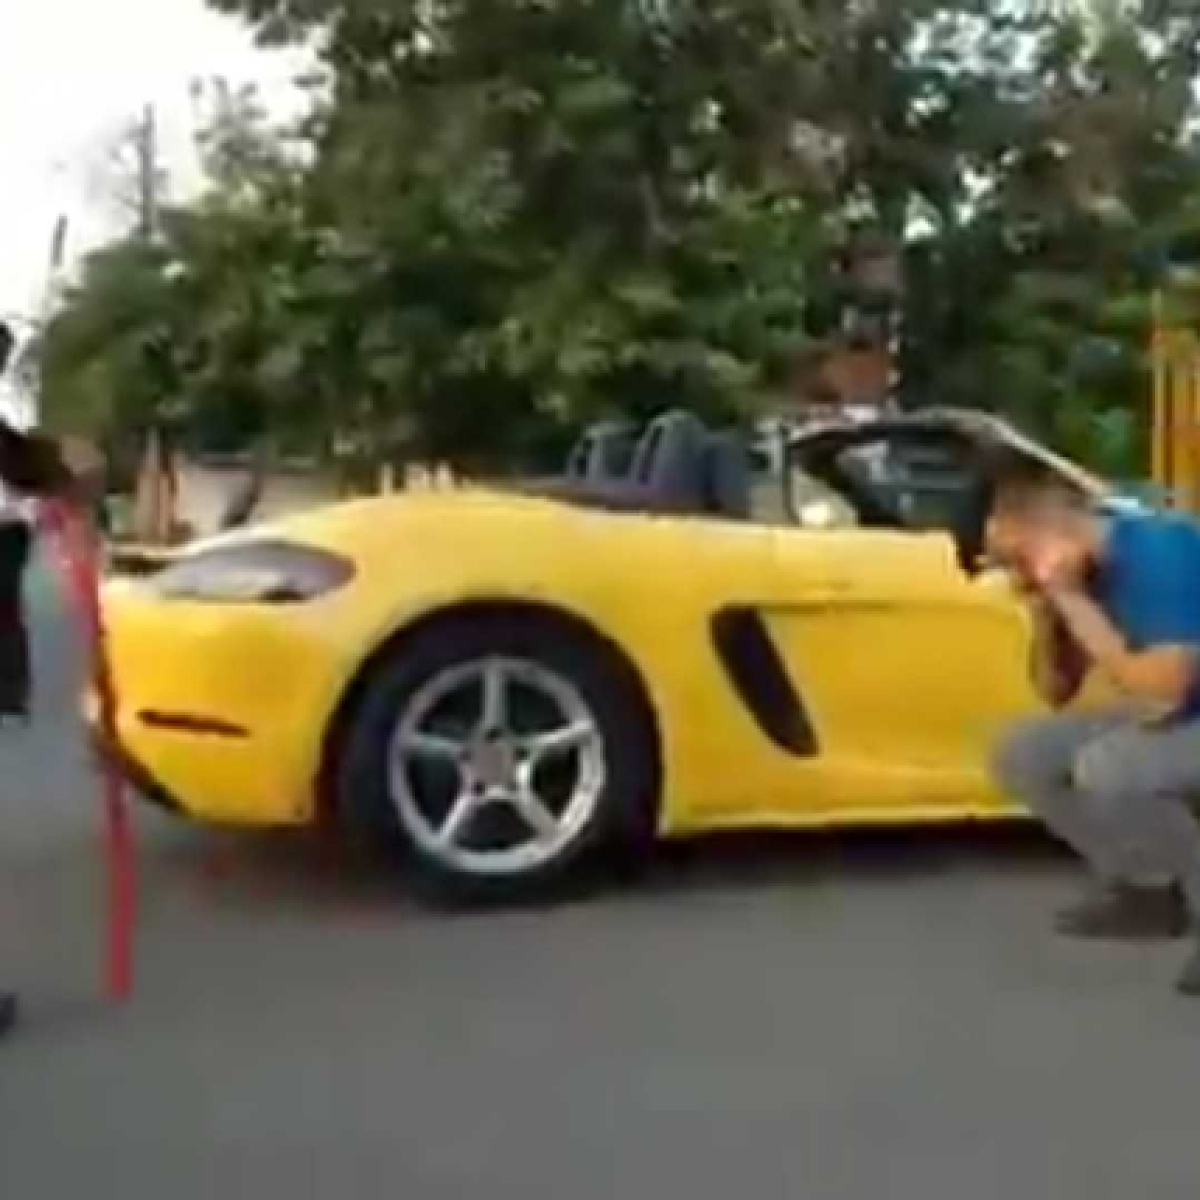 Indore man's Porsche ride ends in vain after security officials charge him with sit-ups for violating lockdown rules